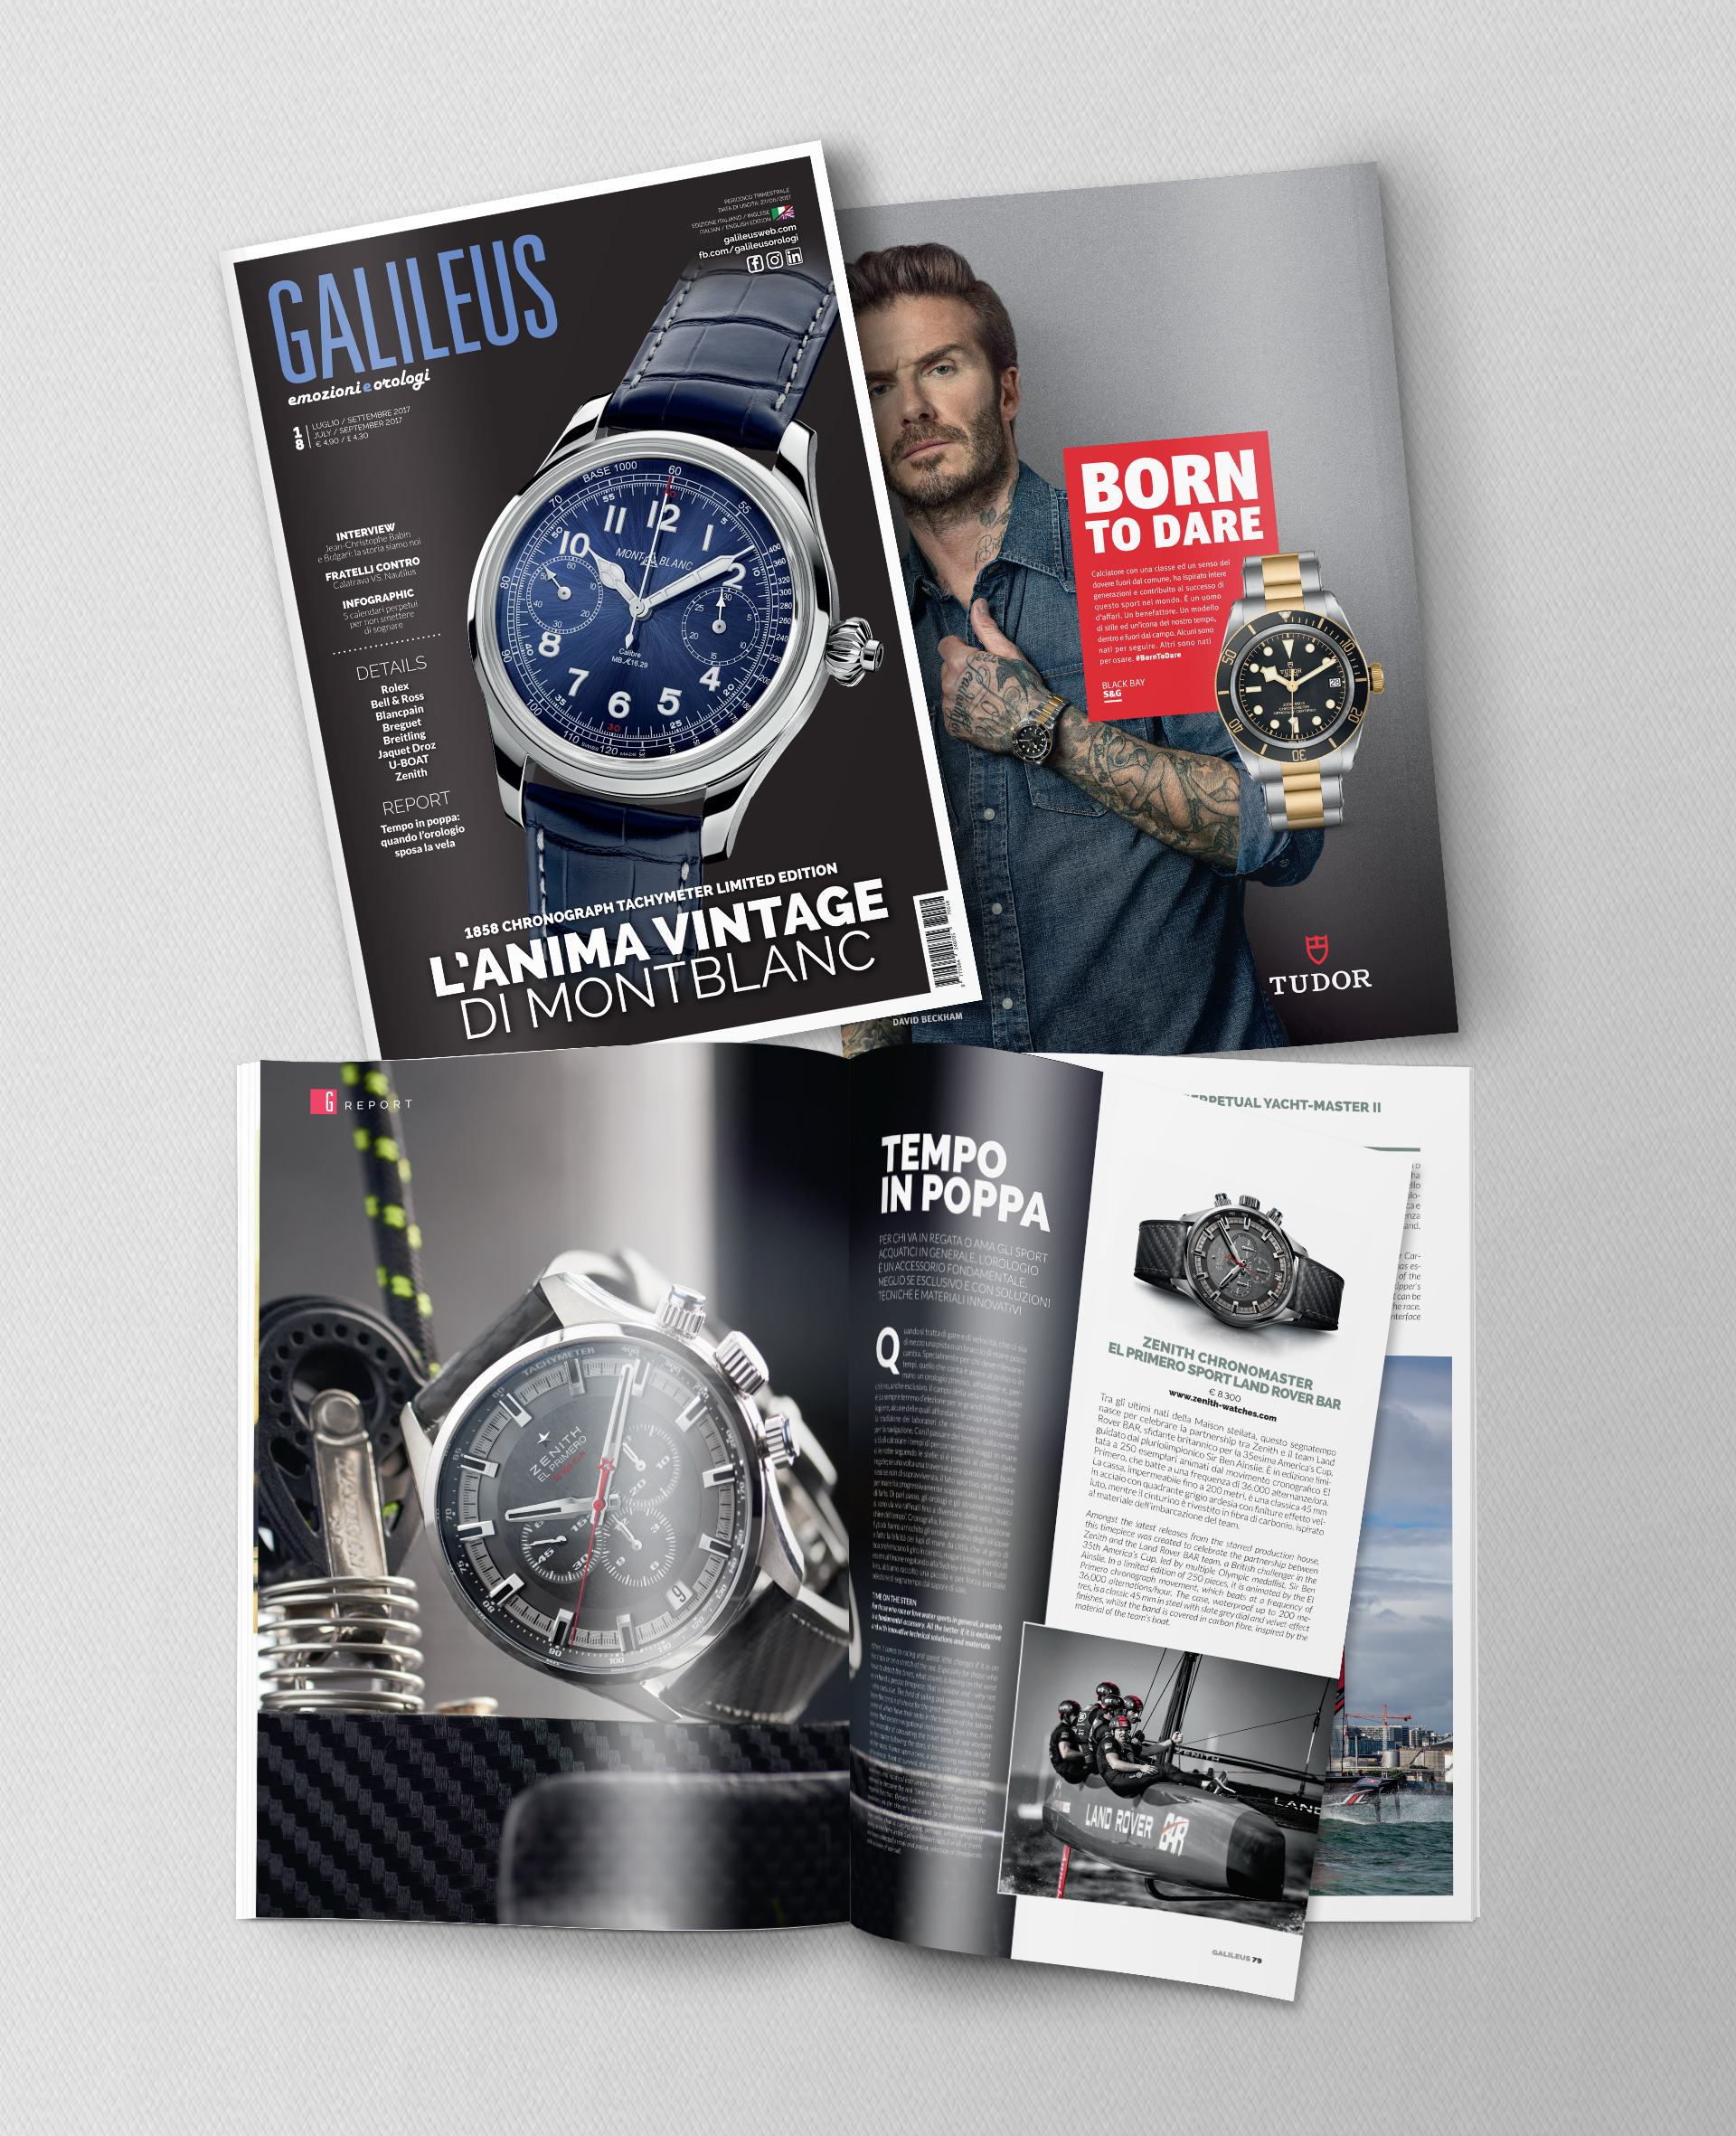 Galileus Magazine